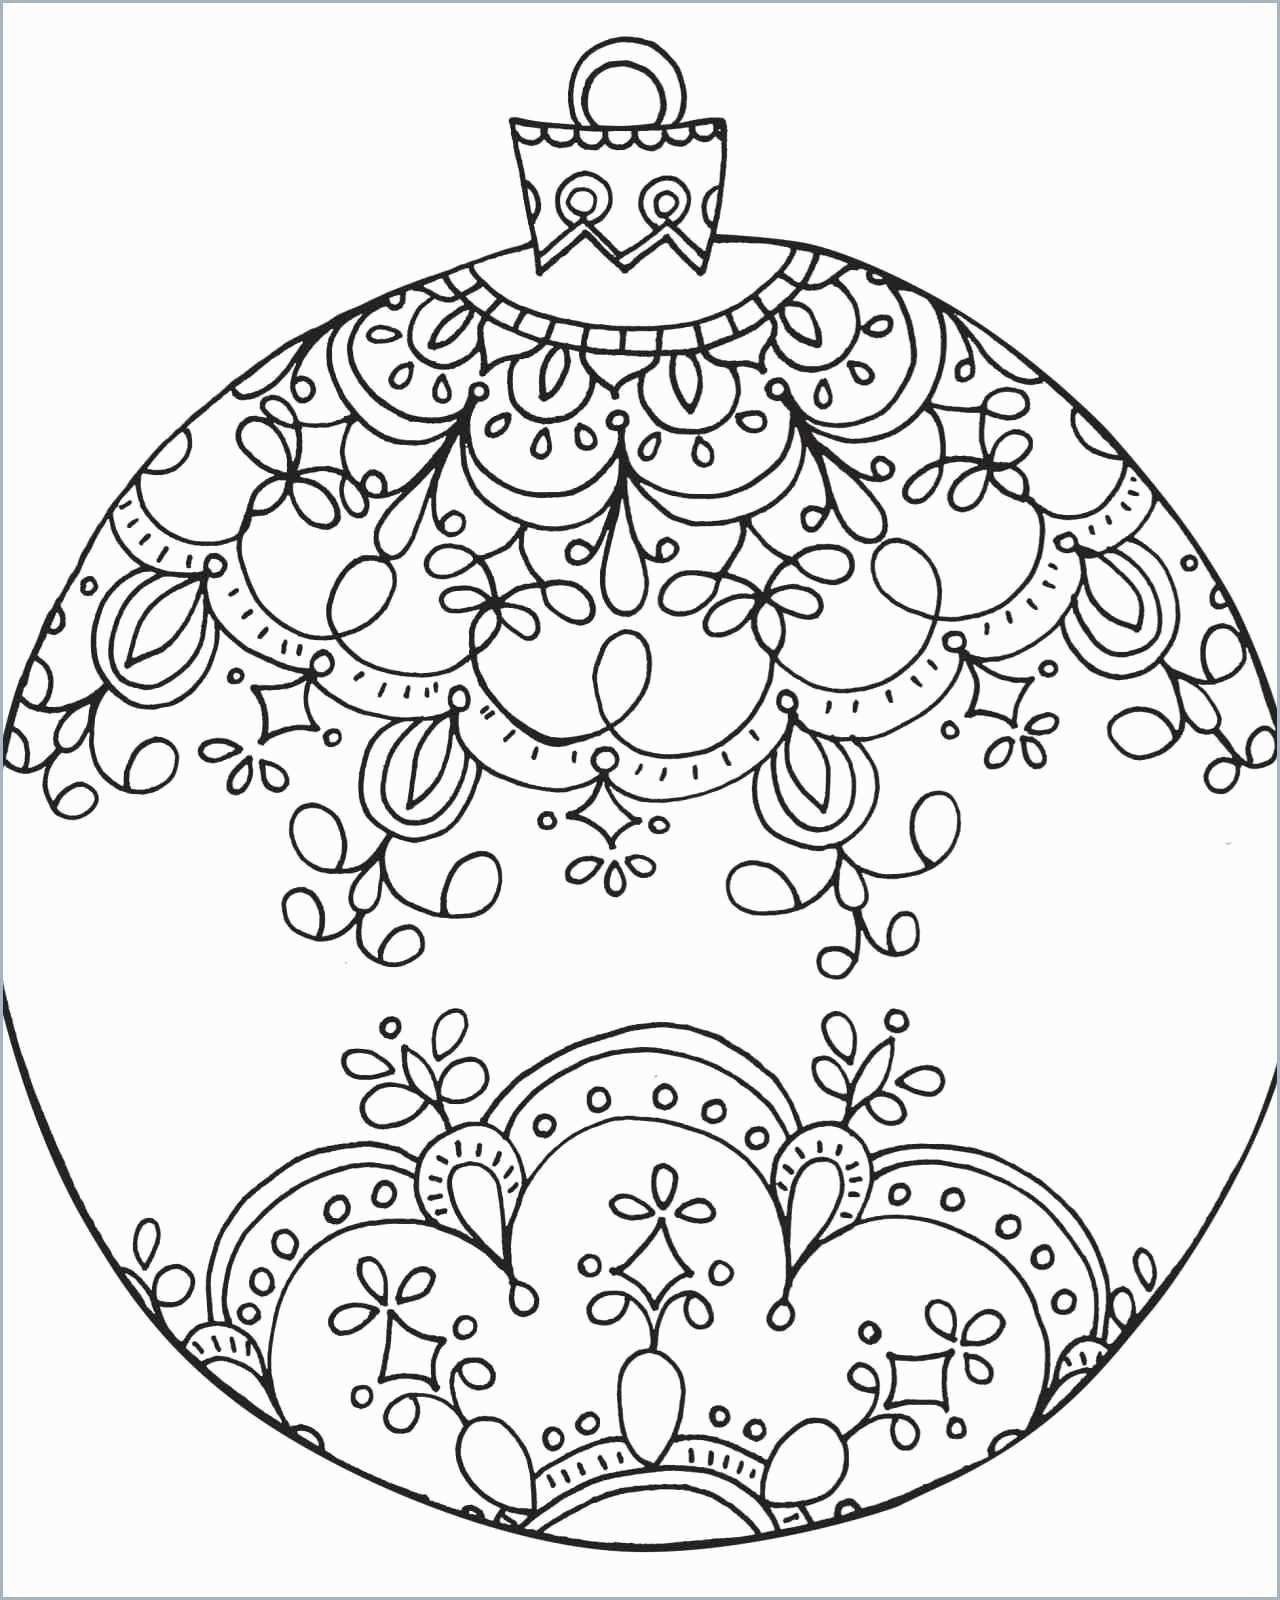 Math Coloring Worksheets 5th Grade Elegant Coloring Pages 5th Grade B…    Printable christmas coloring pages [ 1600 x 1280 Pixel ]